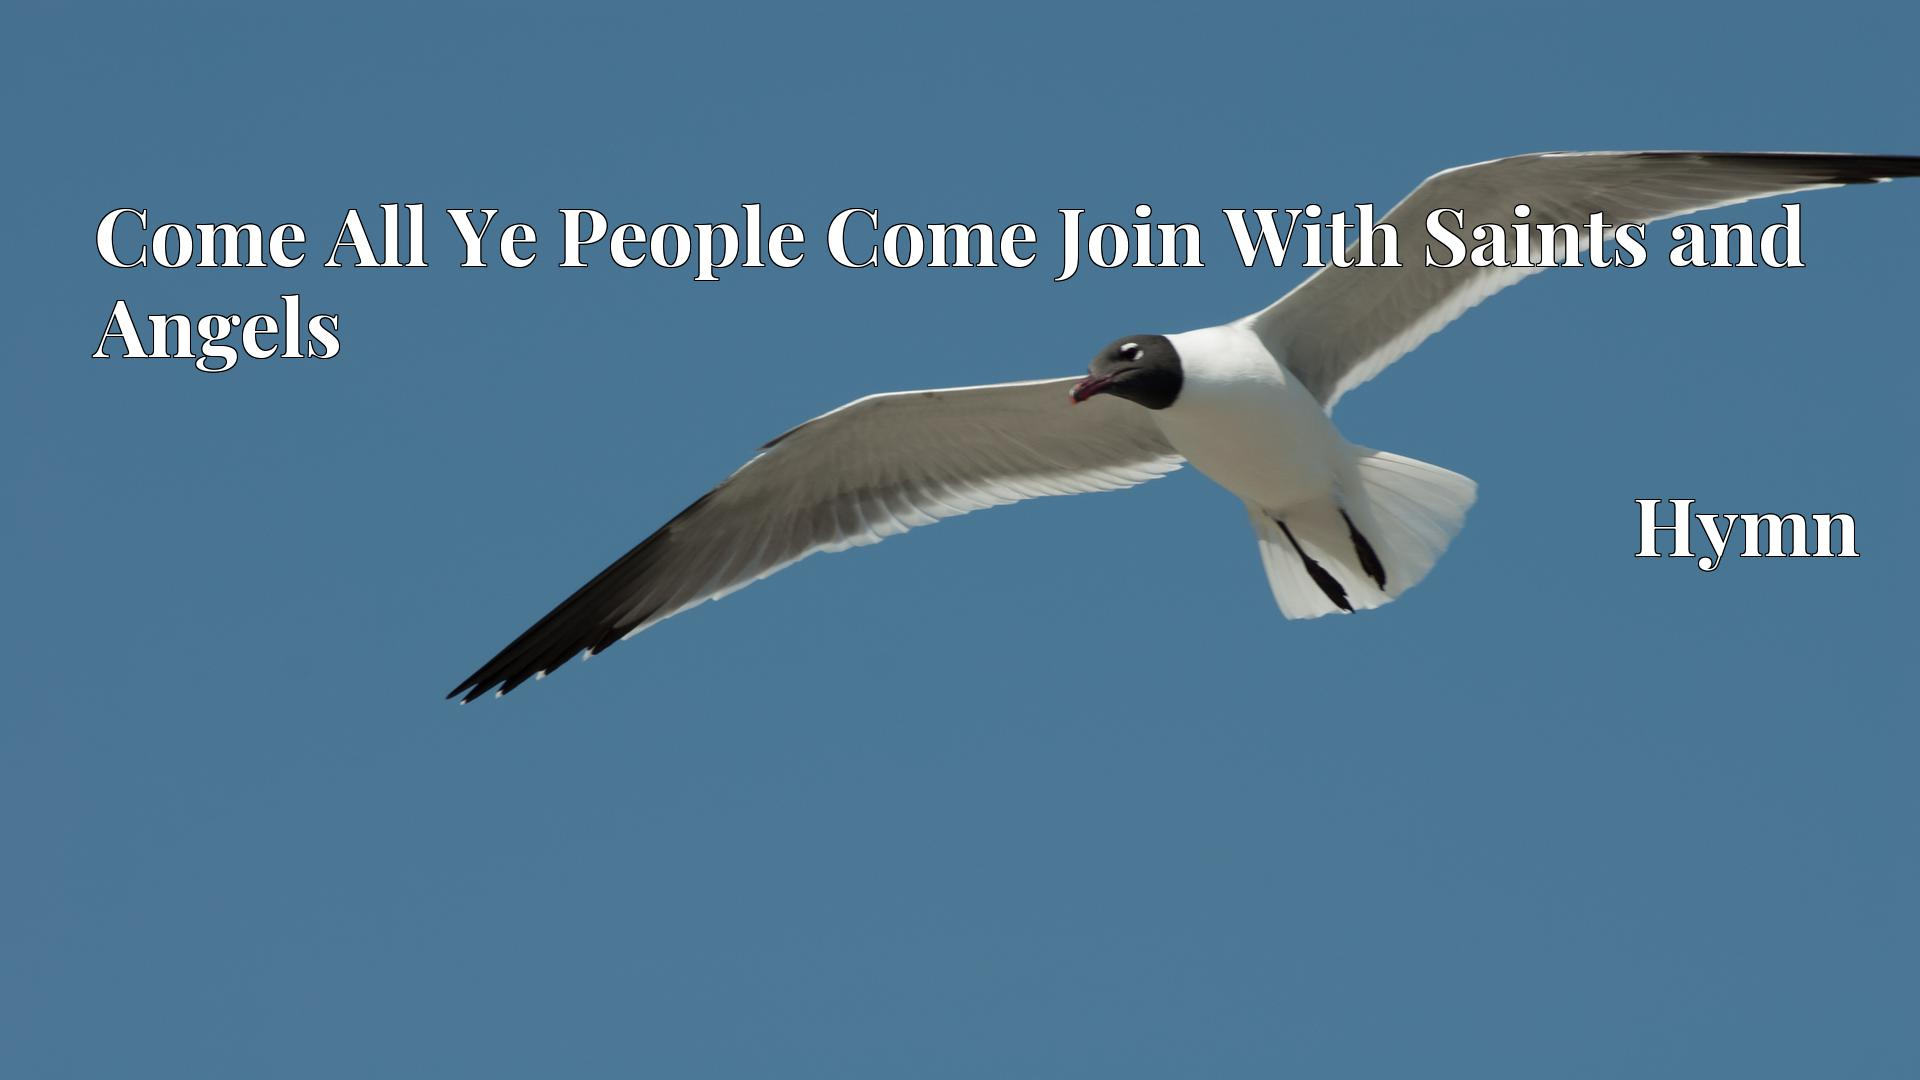 Come All Ye People Come Join With Saints and Angels - Hymn